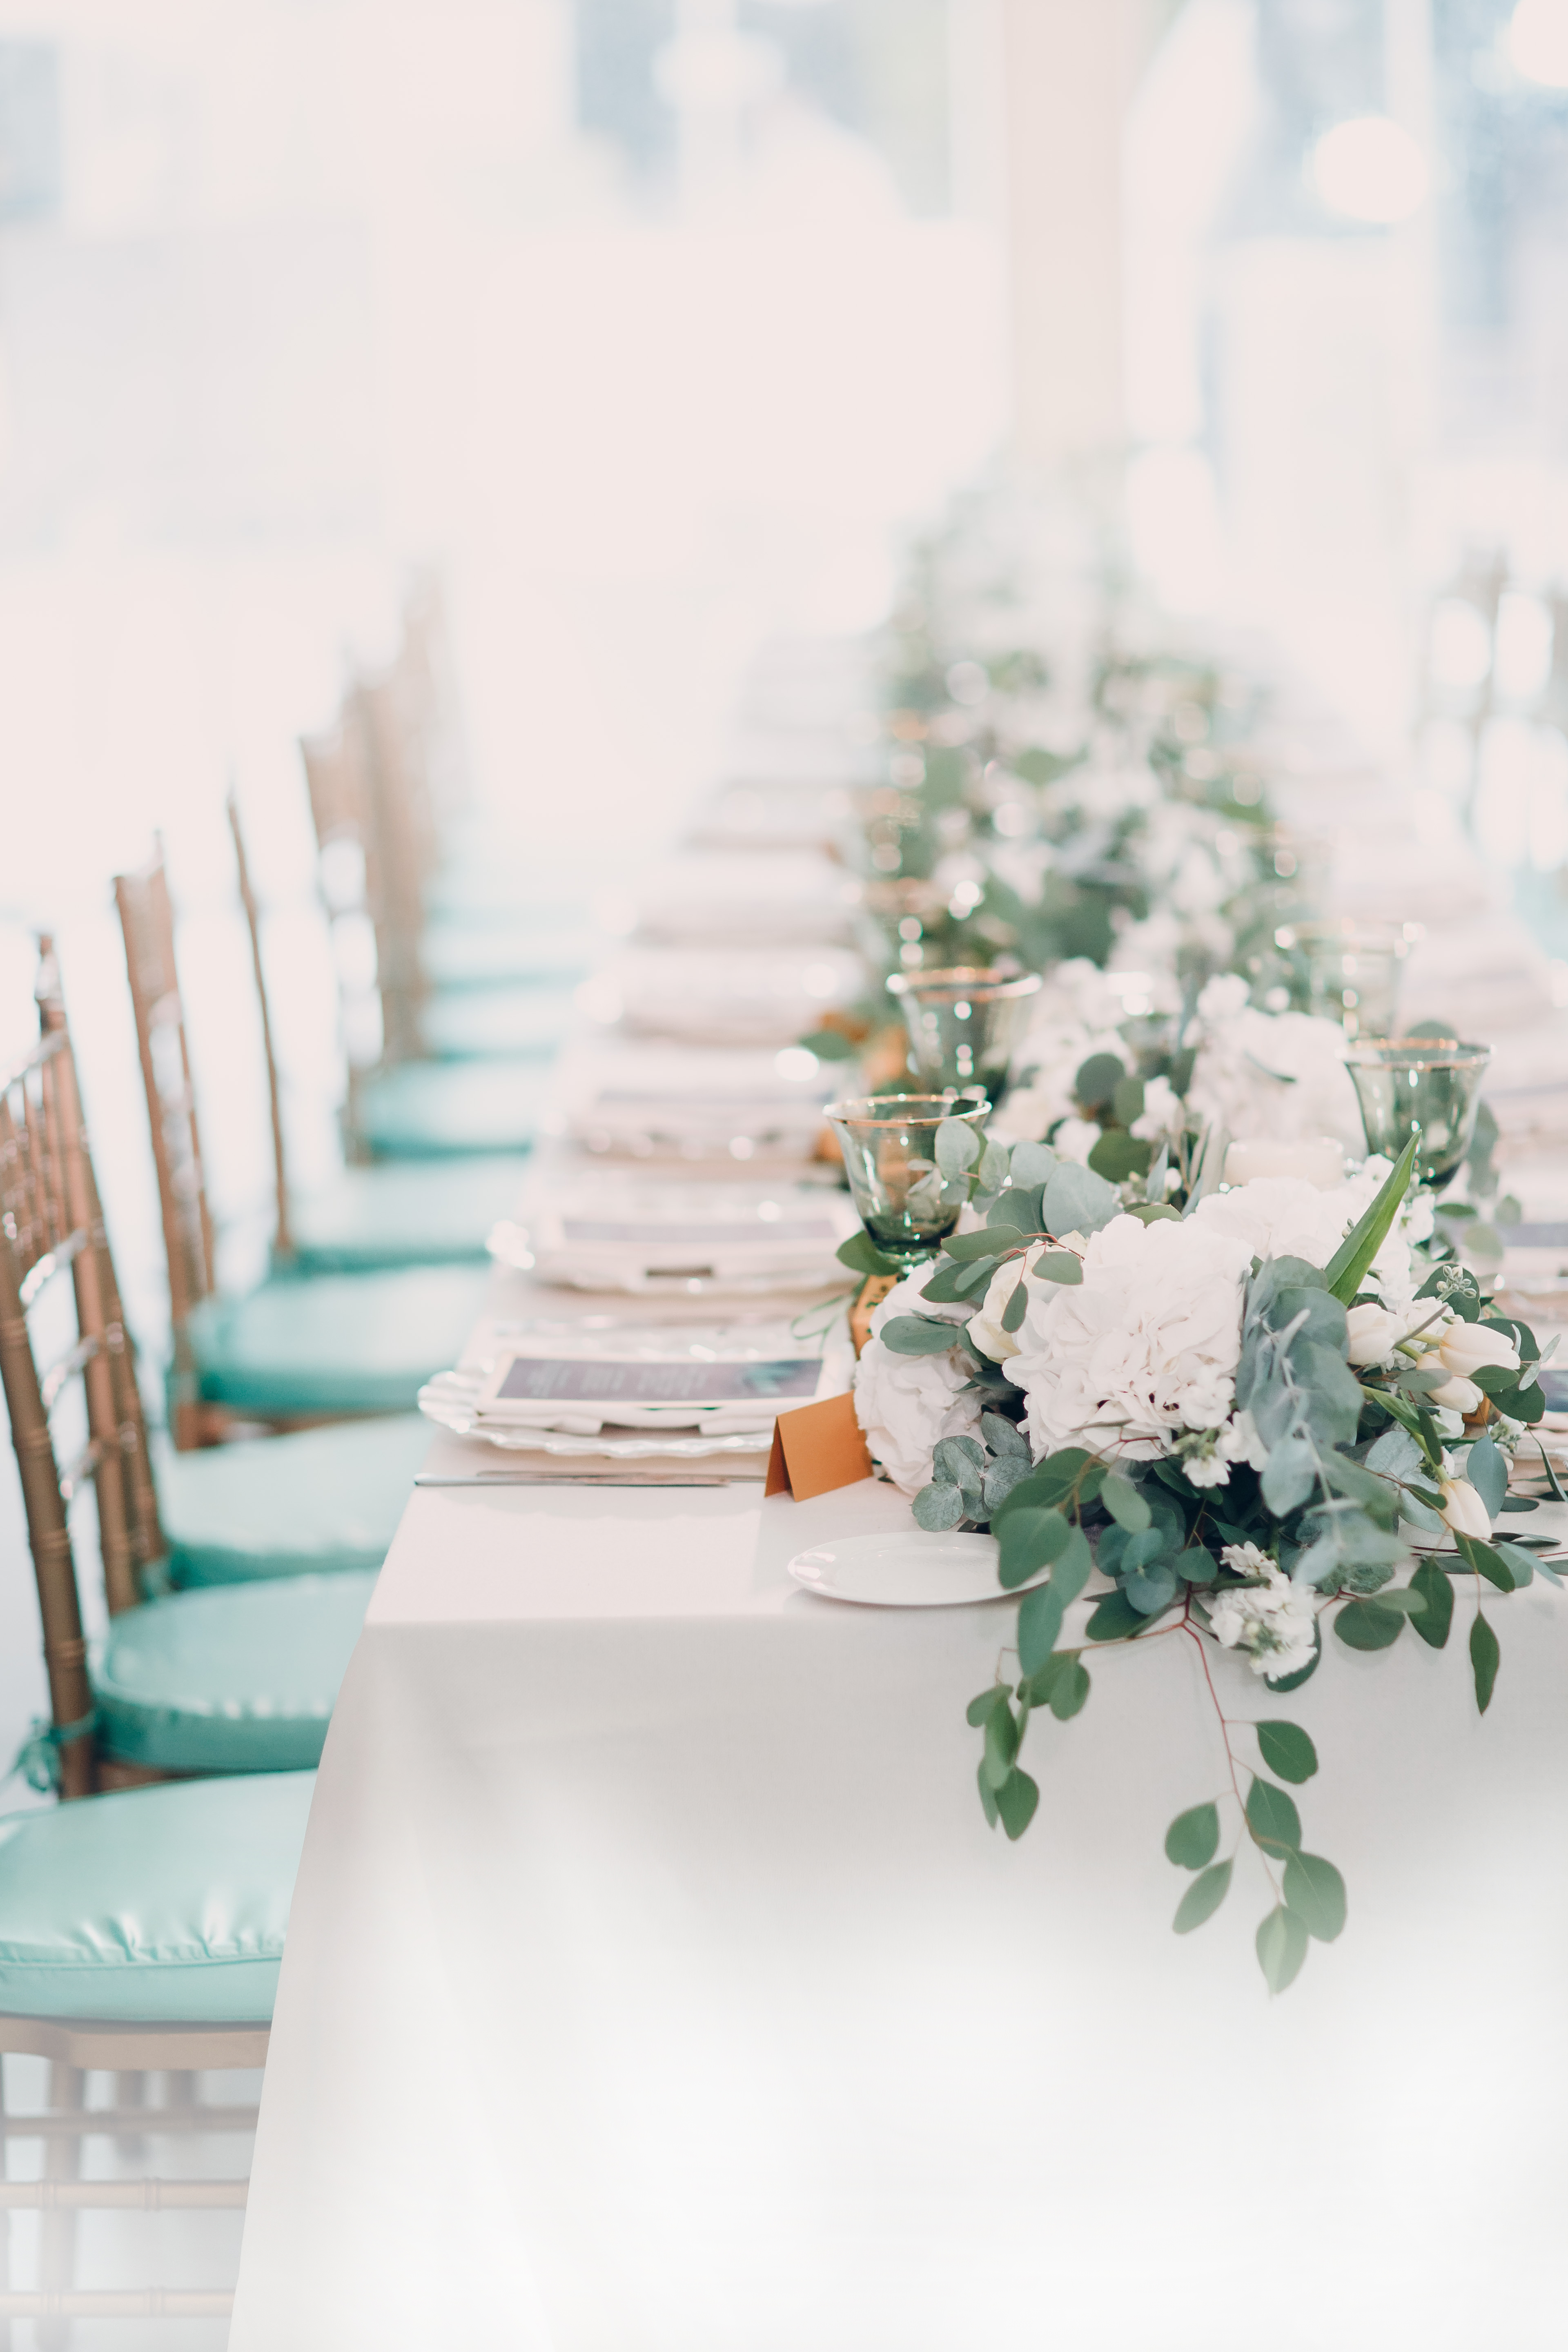 Occasion table